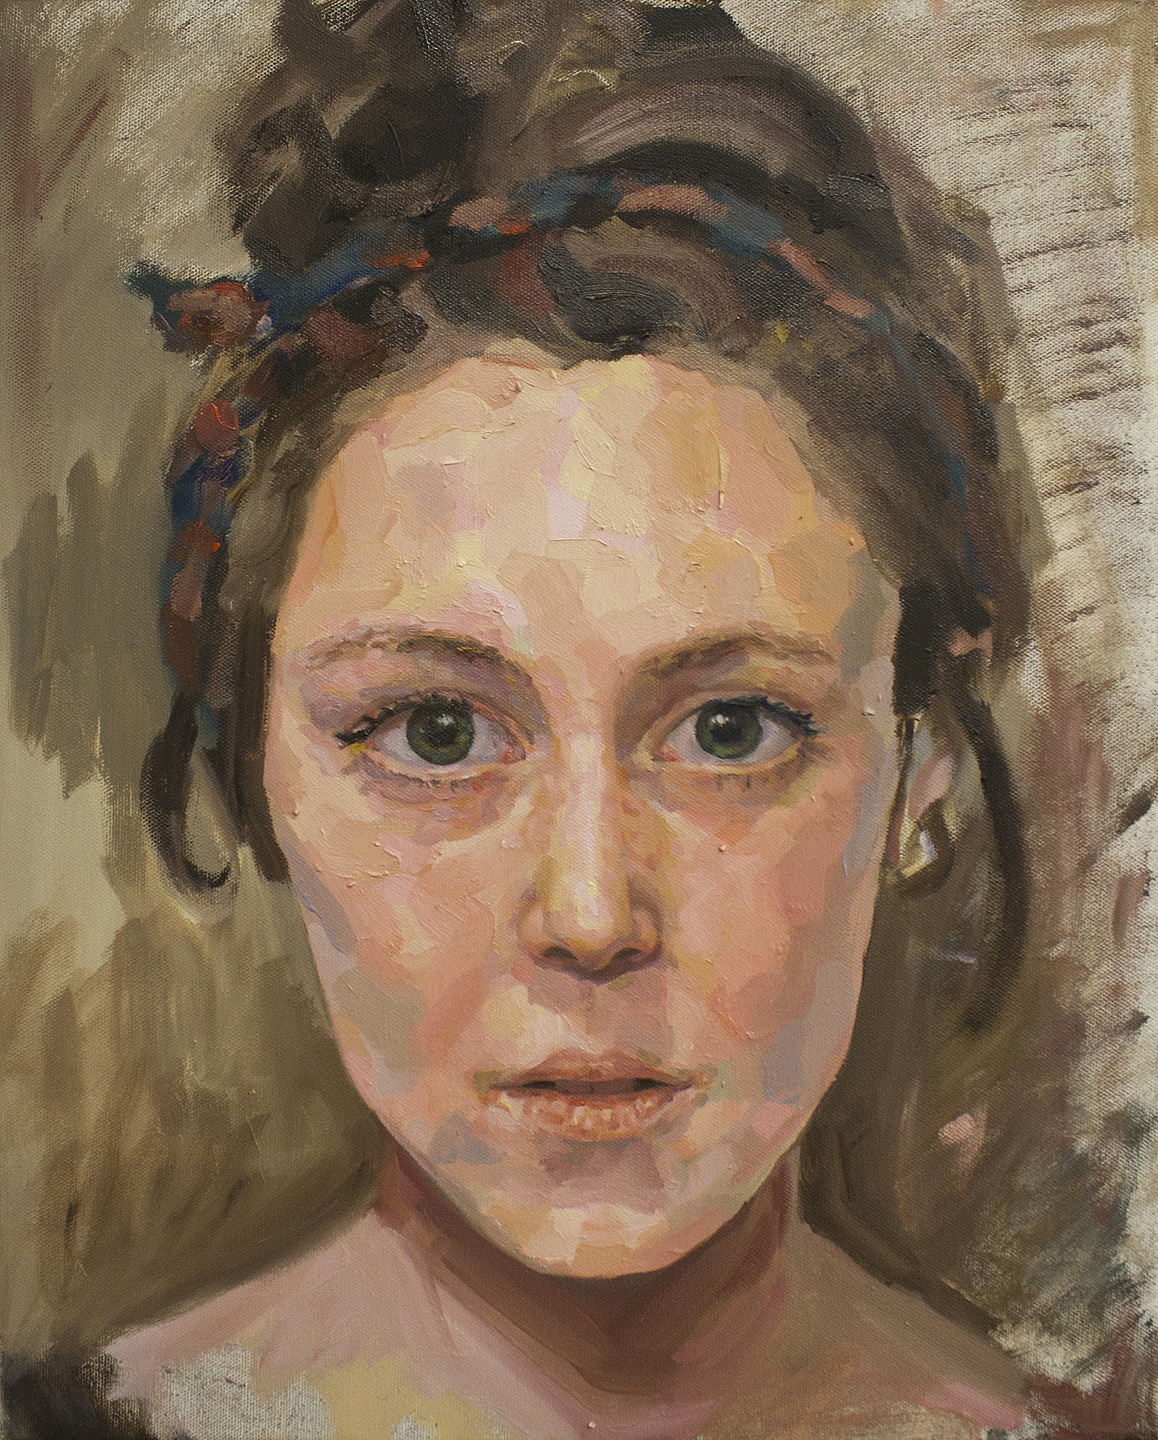 Martine (study) • Oil on Canvas • 41 x 51 cm • 2012